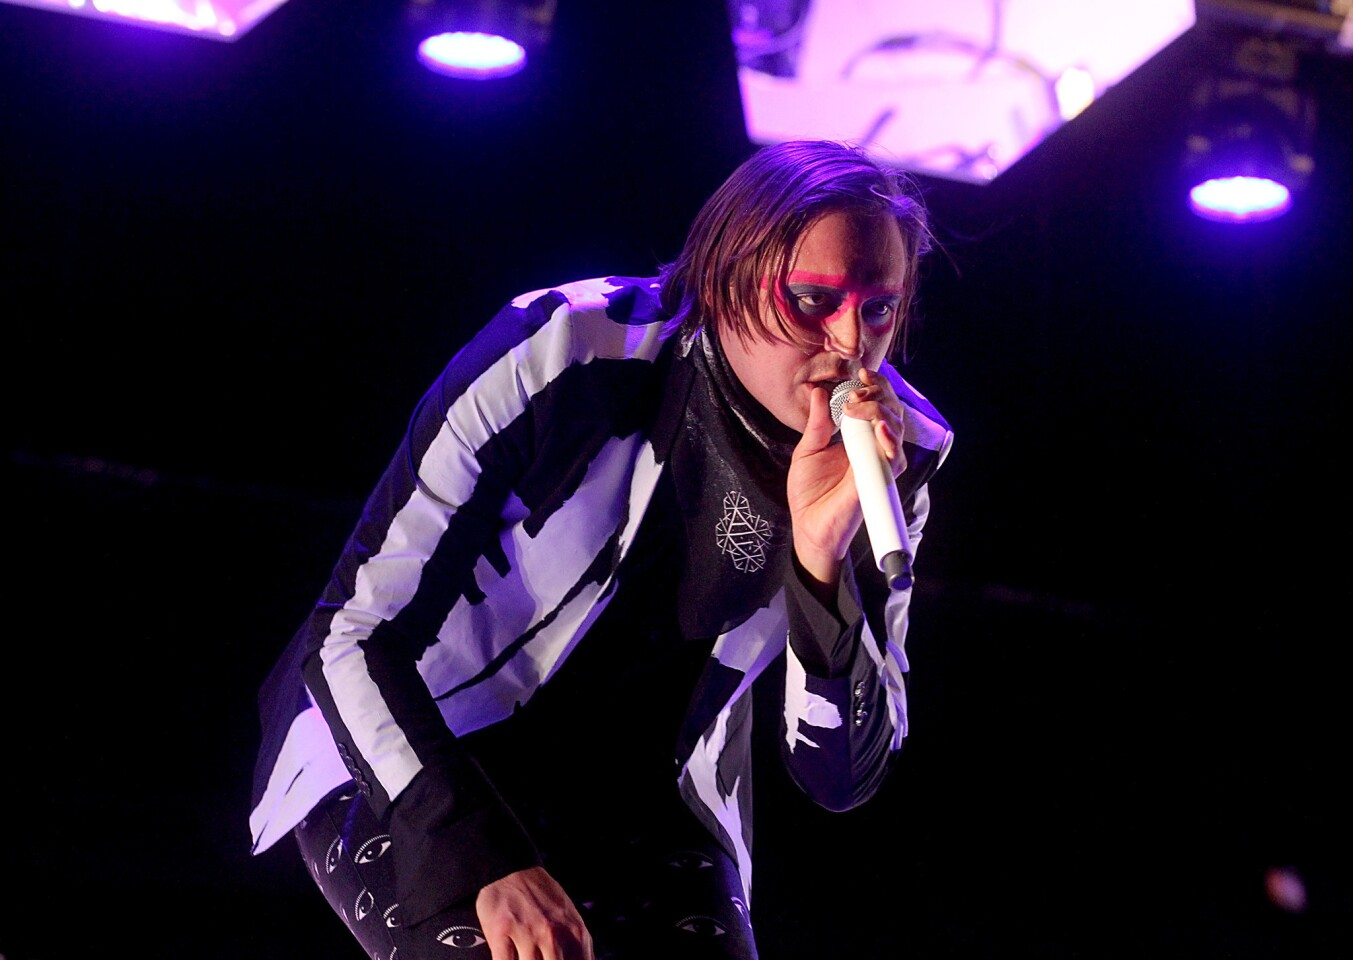 Arcade Fire lead vocalist Win Butler performs on the main stage on the third night of the Coachella Valley Music and Arts Festival in Indio.